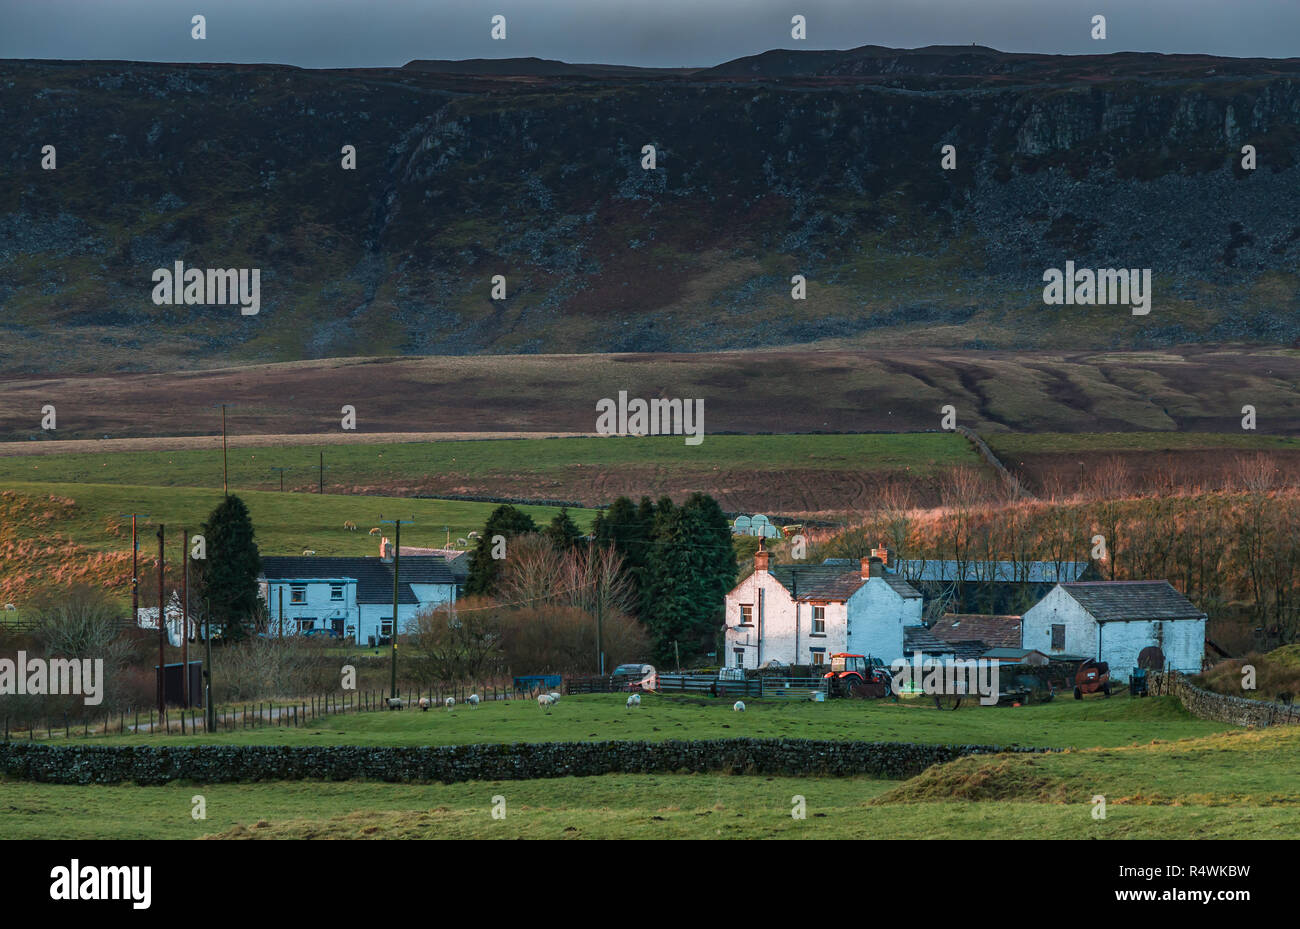 North Pennines AONB landscape, the remote farming hamlet of Langdon Beck, Upper Teesdale, UK in early morning sunlight and a dark sky background Stock Photo